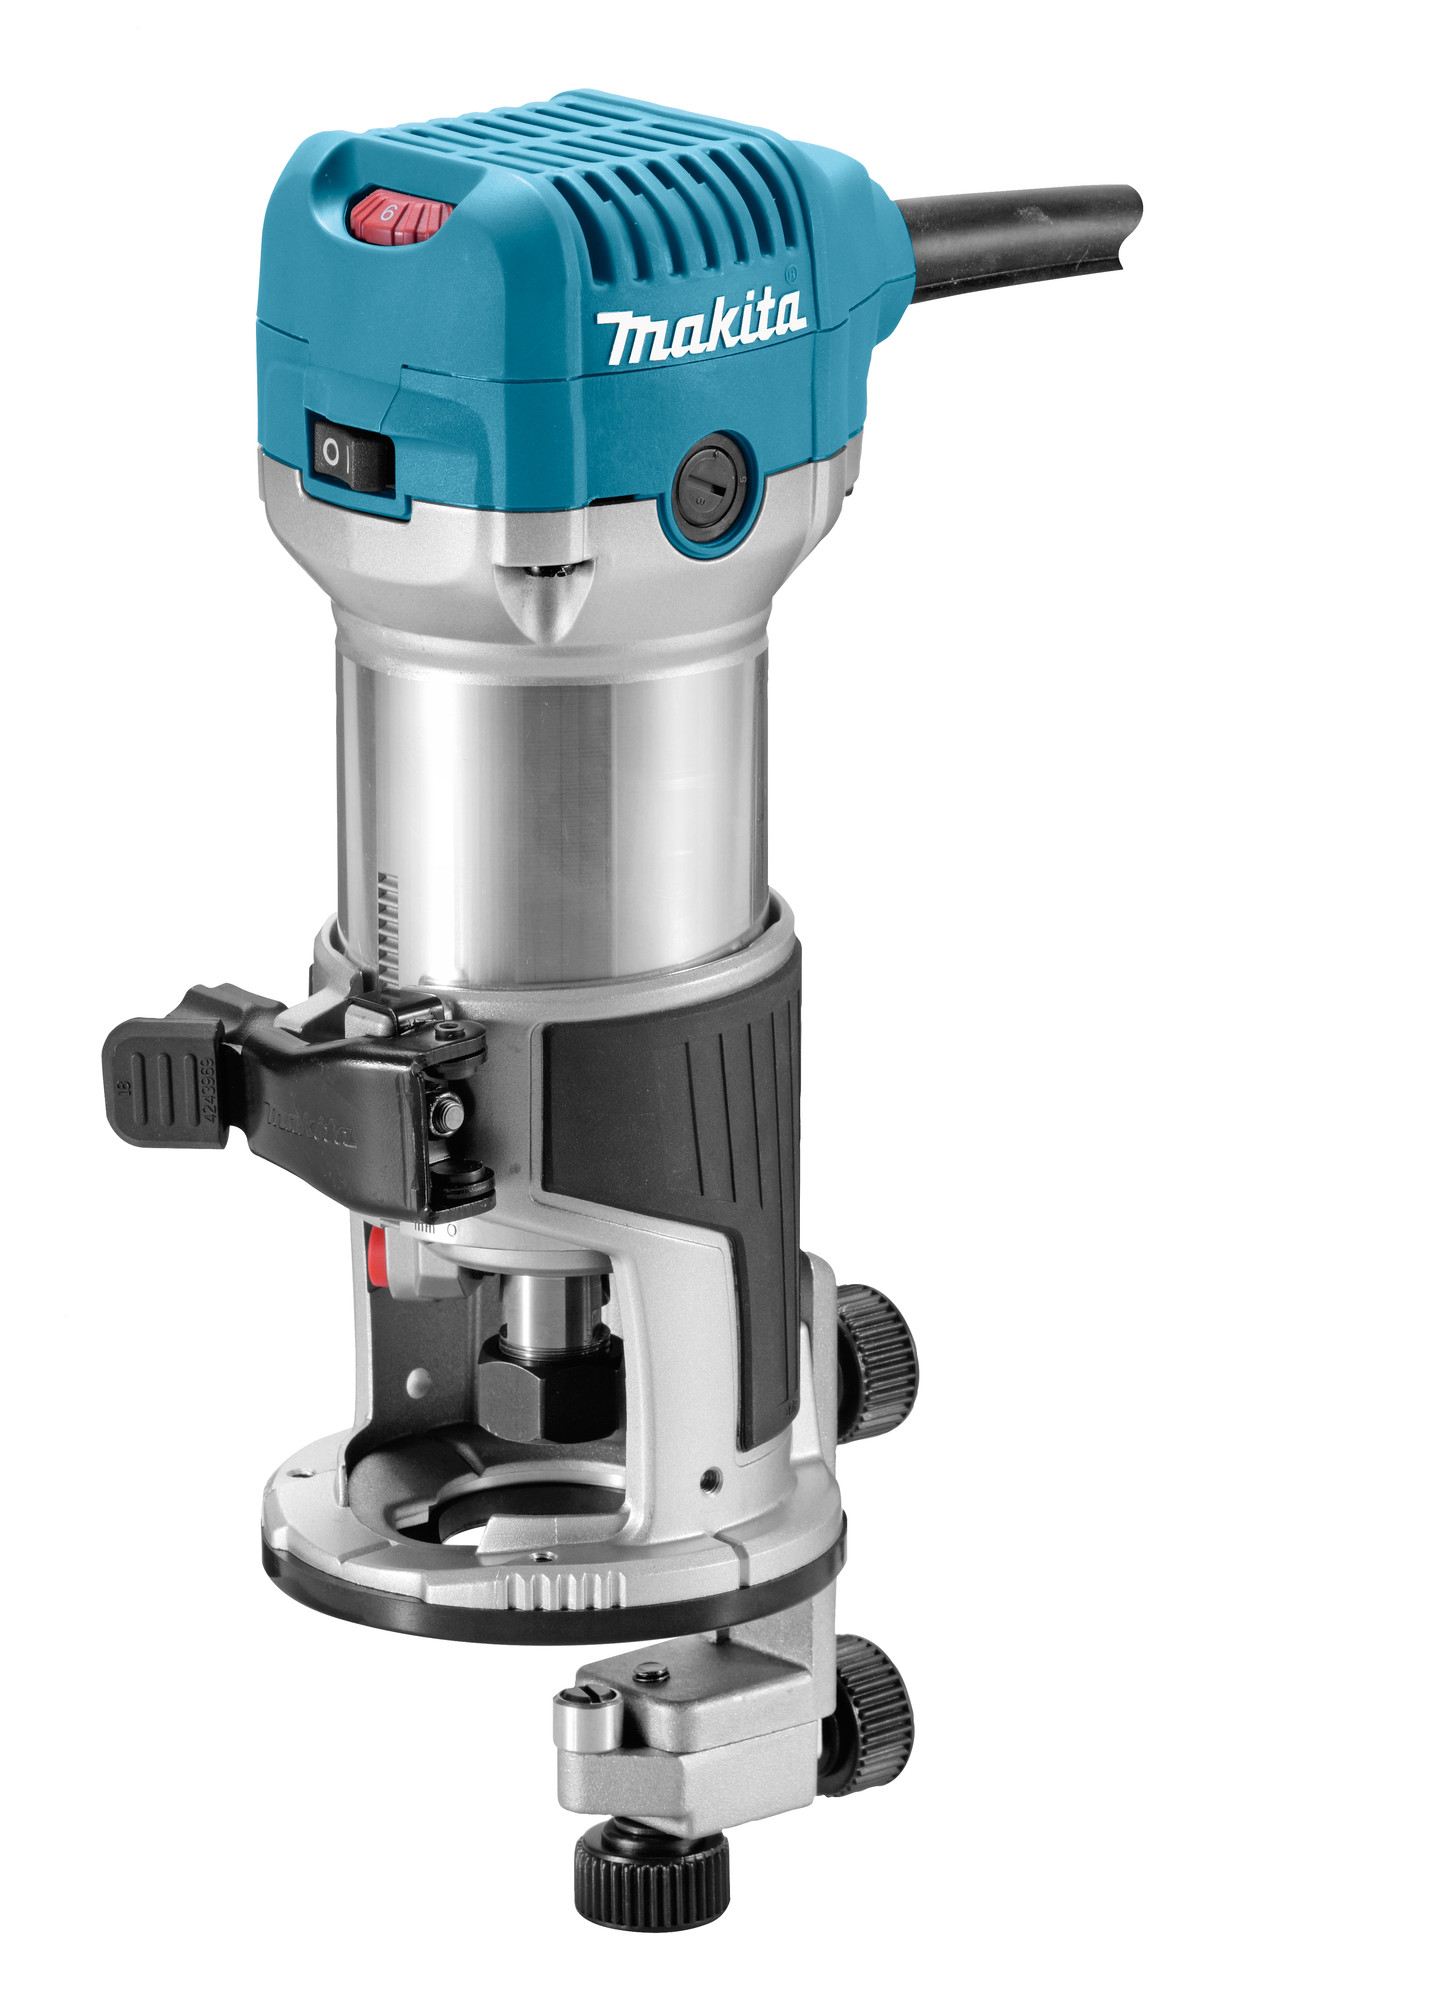 Makita Freesmachine Festool Rhodius Interdynamics Makita Mt Freesmachine Kopen Het